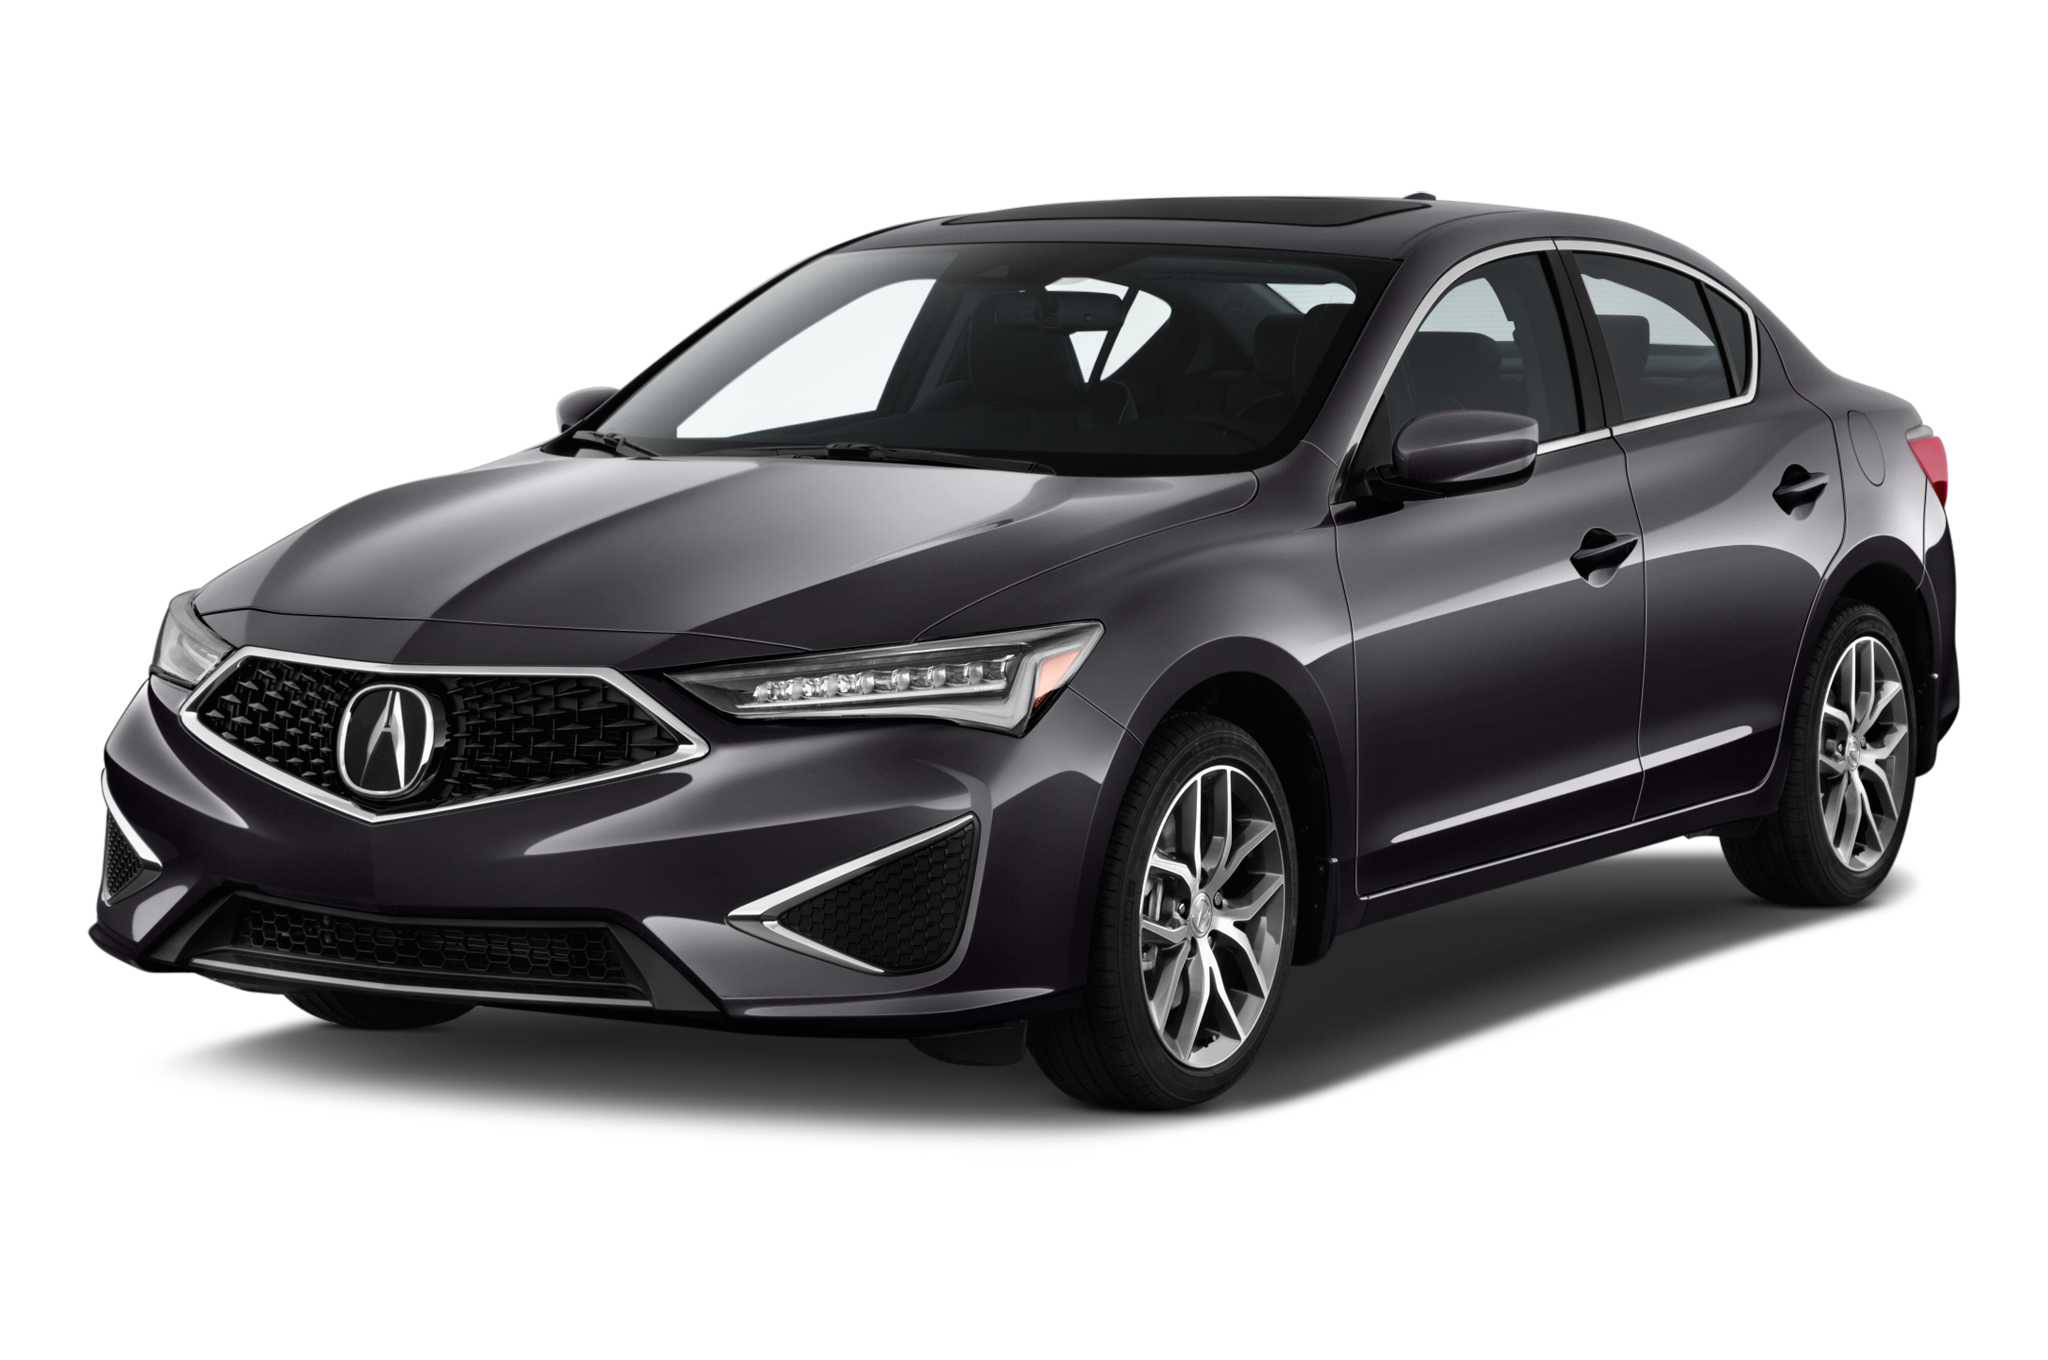 2019 Acura ILX Specs And Features